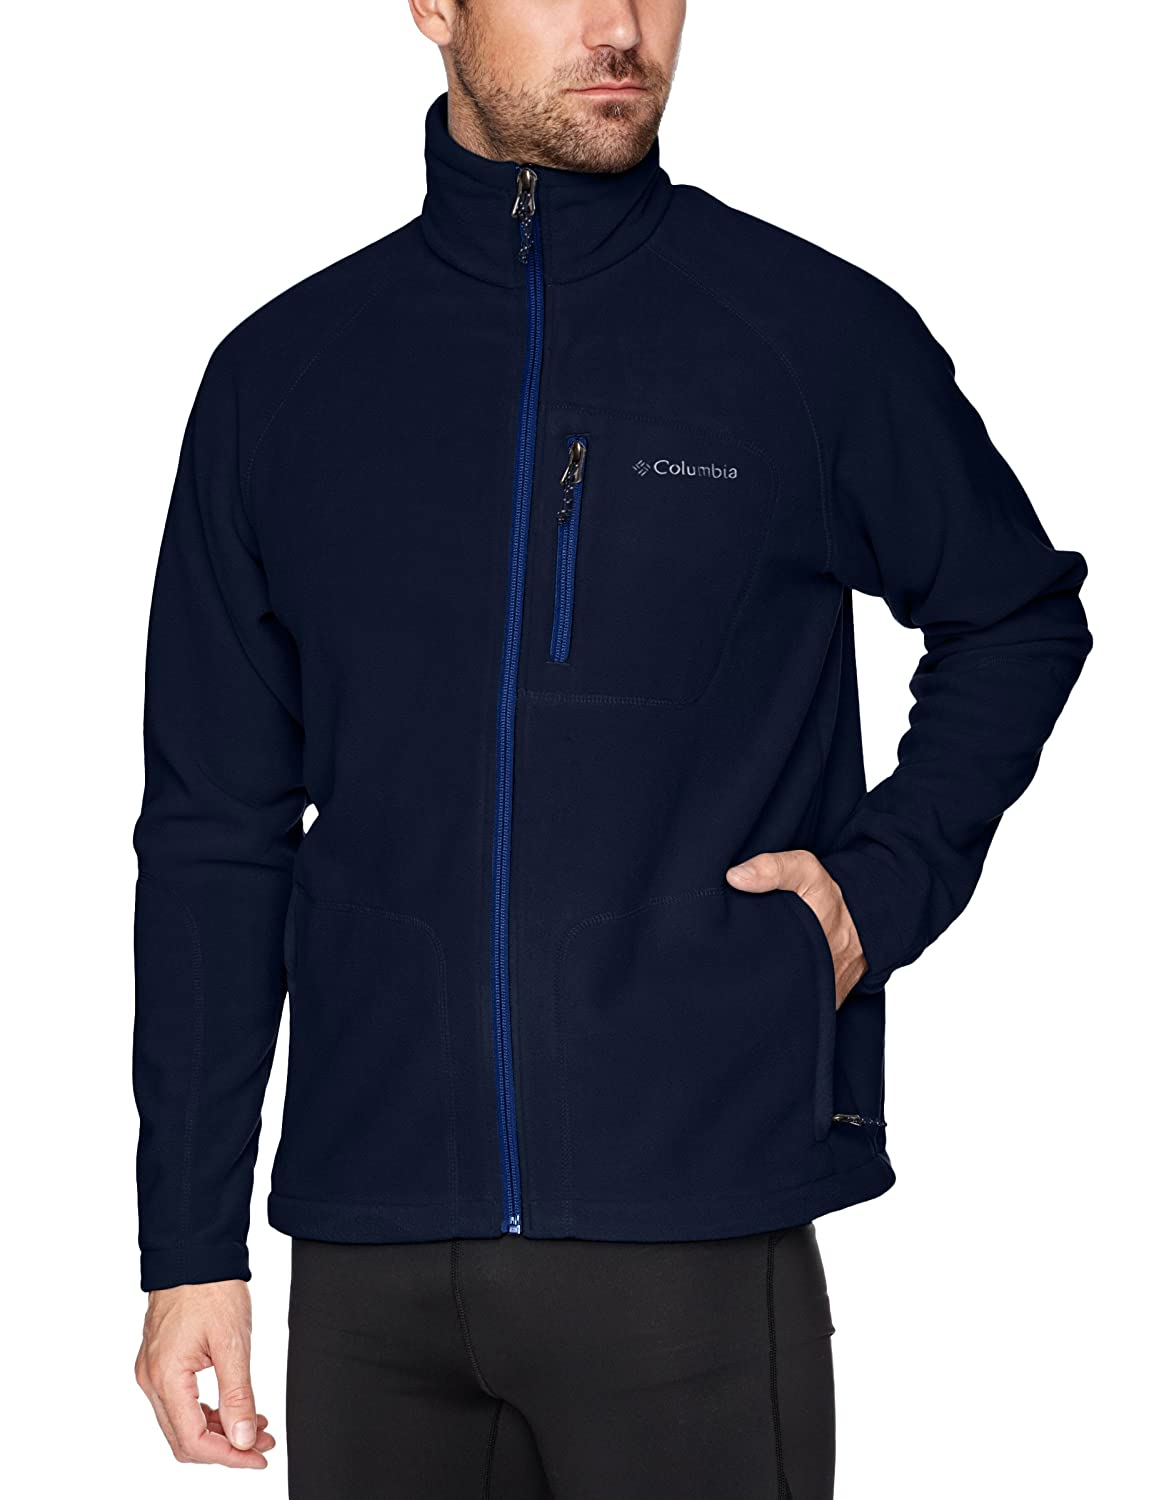 Columbia Men's Big & Tall Fast Trek II Full Zip Fleece Jacket Columbia Men's Outerwear 1420424